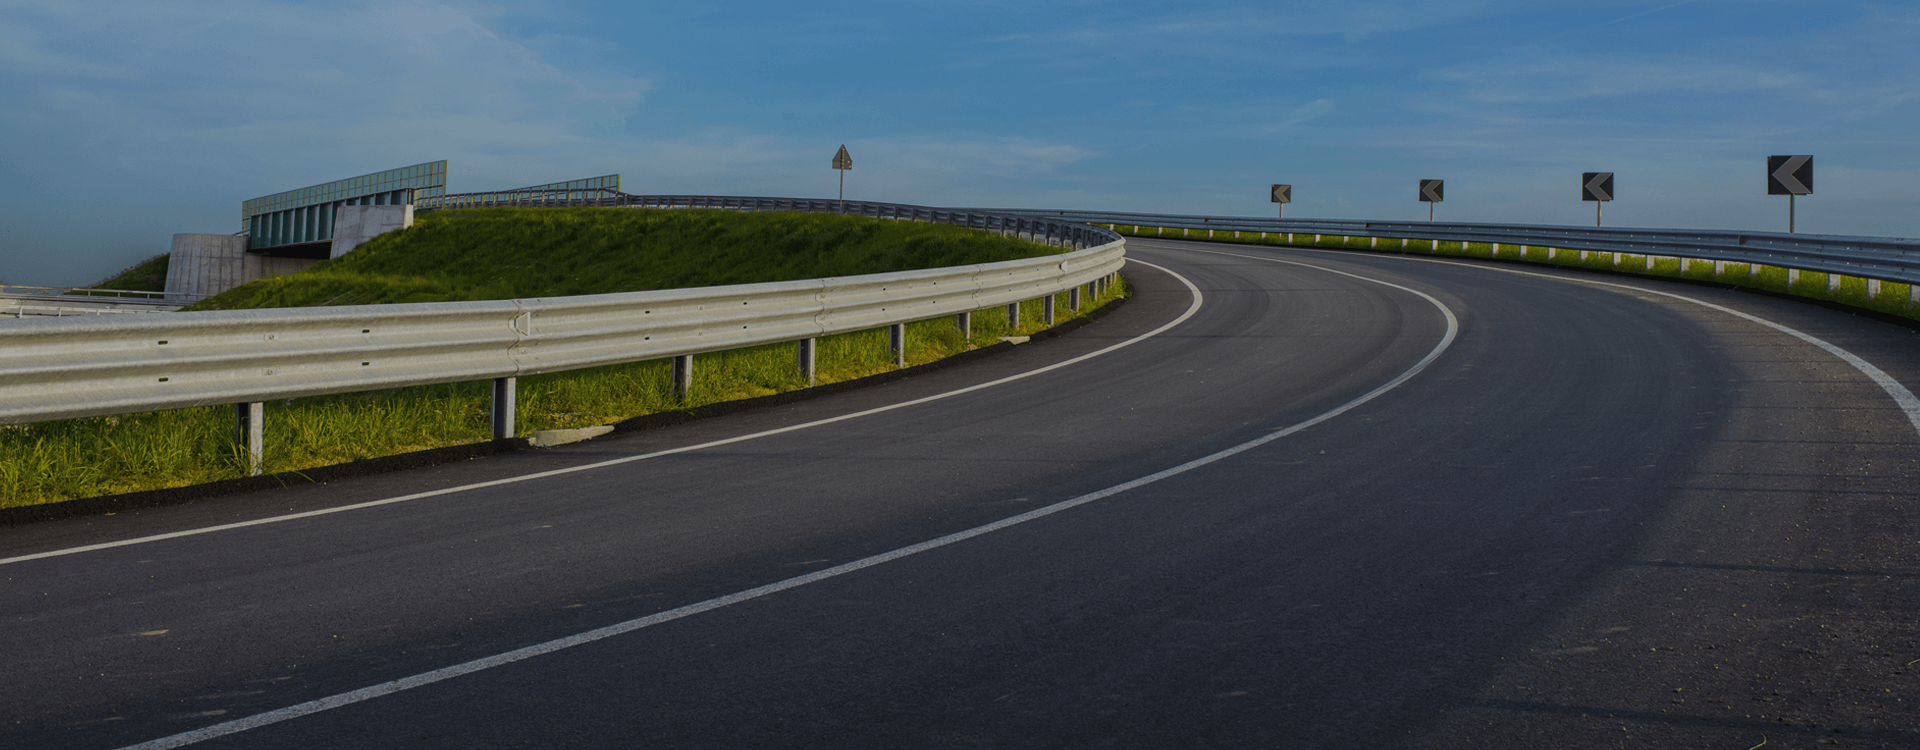 road with armco barriers